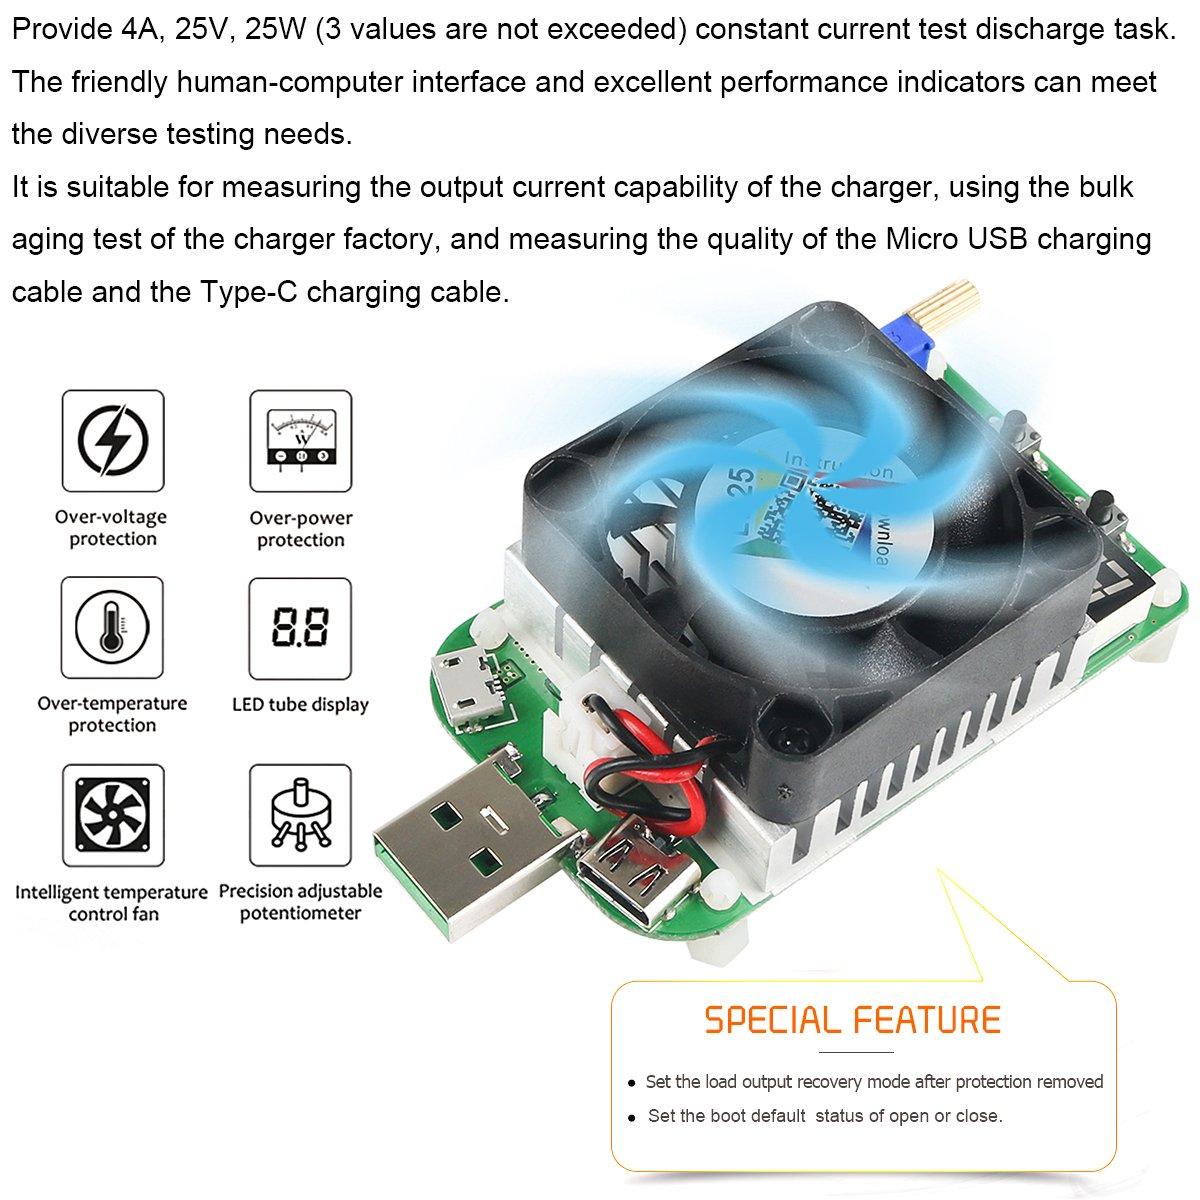 Makerhawk Usb Load Tester Electronic Resistor Module 25w For More Detail Circuit Provides Constantcurrent Testing Ld25 Interface Discharge Adjustable Constant Current Intelligent Temperature